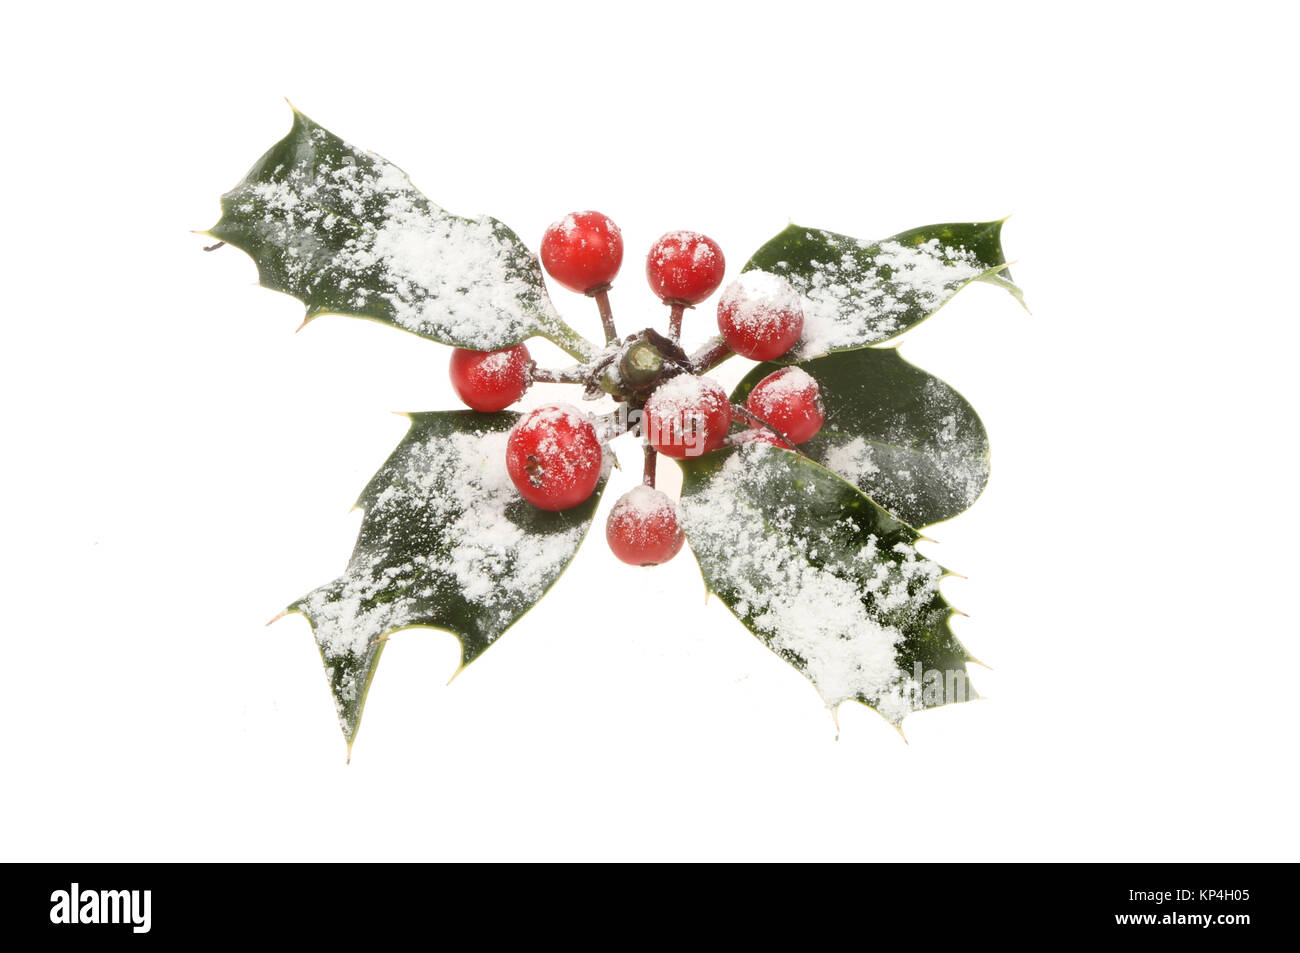 Sprig of holly dusted with snow isolated against white - Stock Image